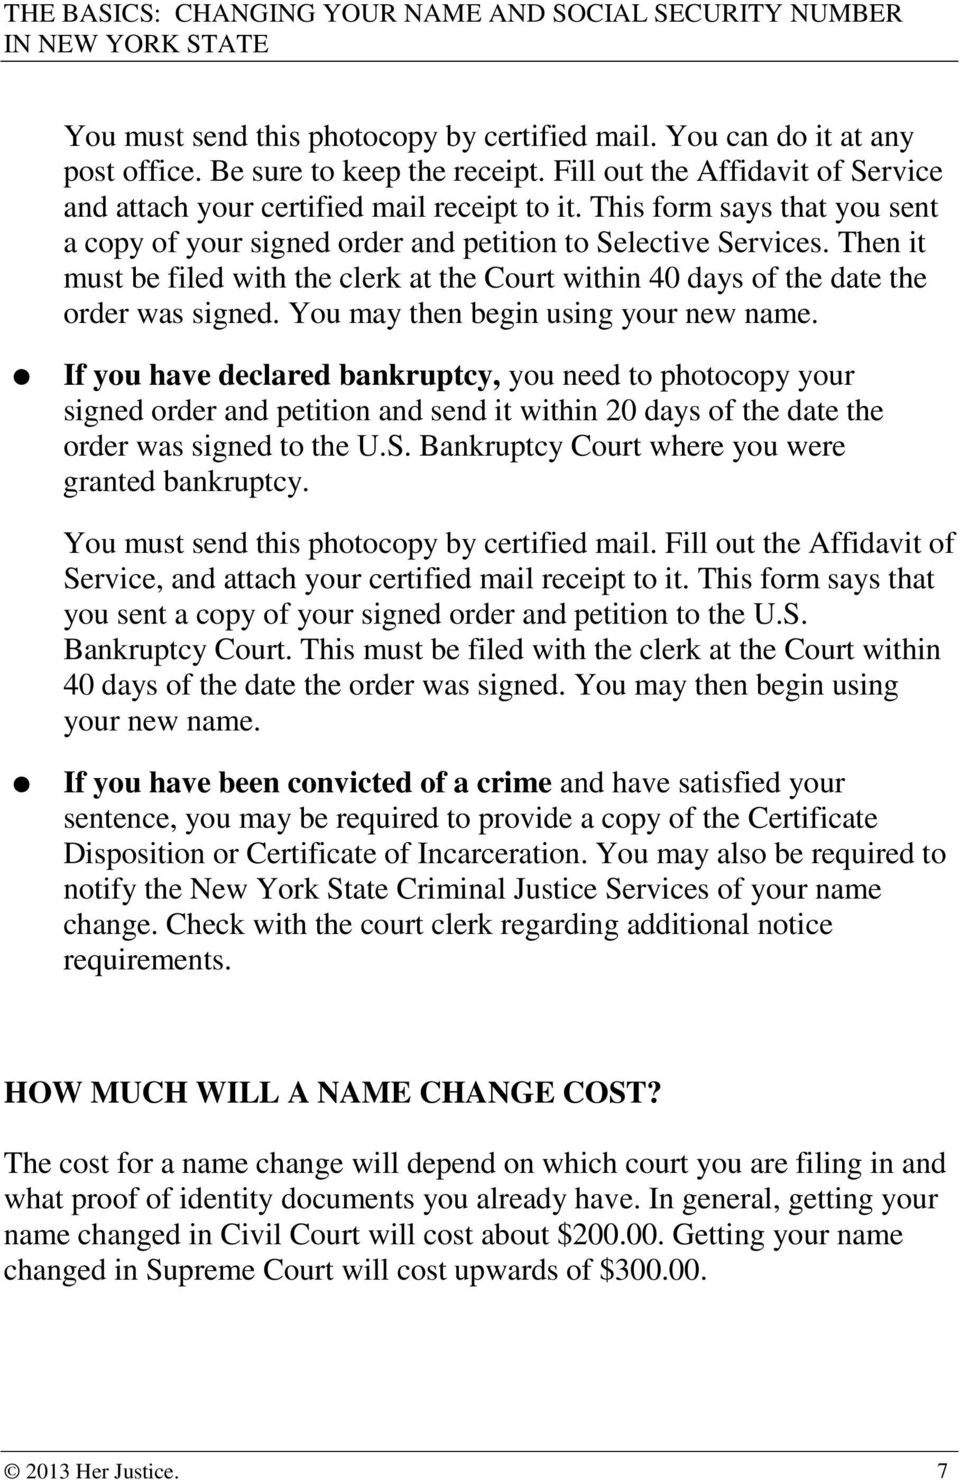 You may then begin using your new name. If you have declared bankruptcy, you need to photocopy your signed order and petition and send it within 20 days of the date the order was signed to the U.S.